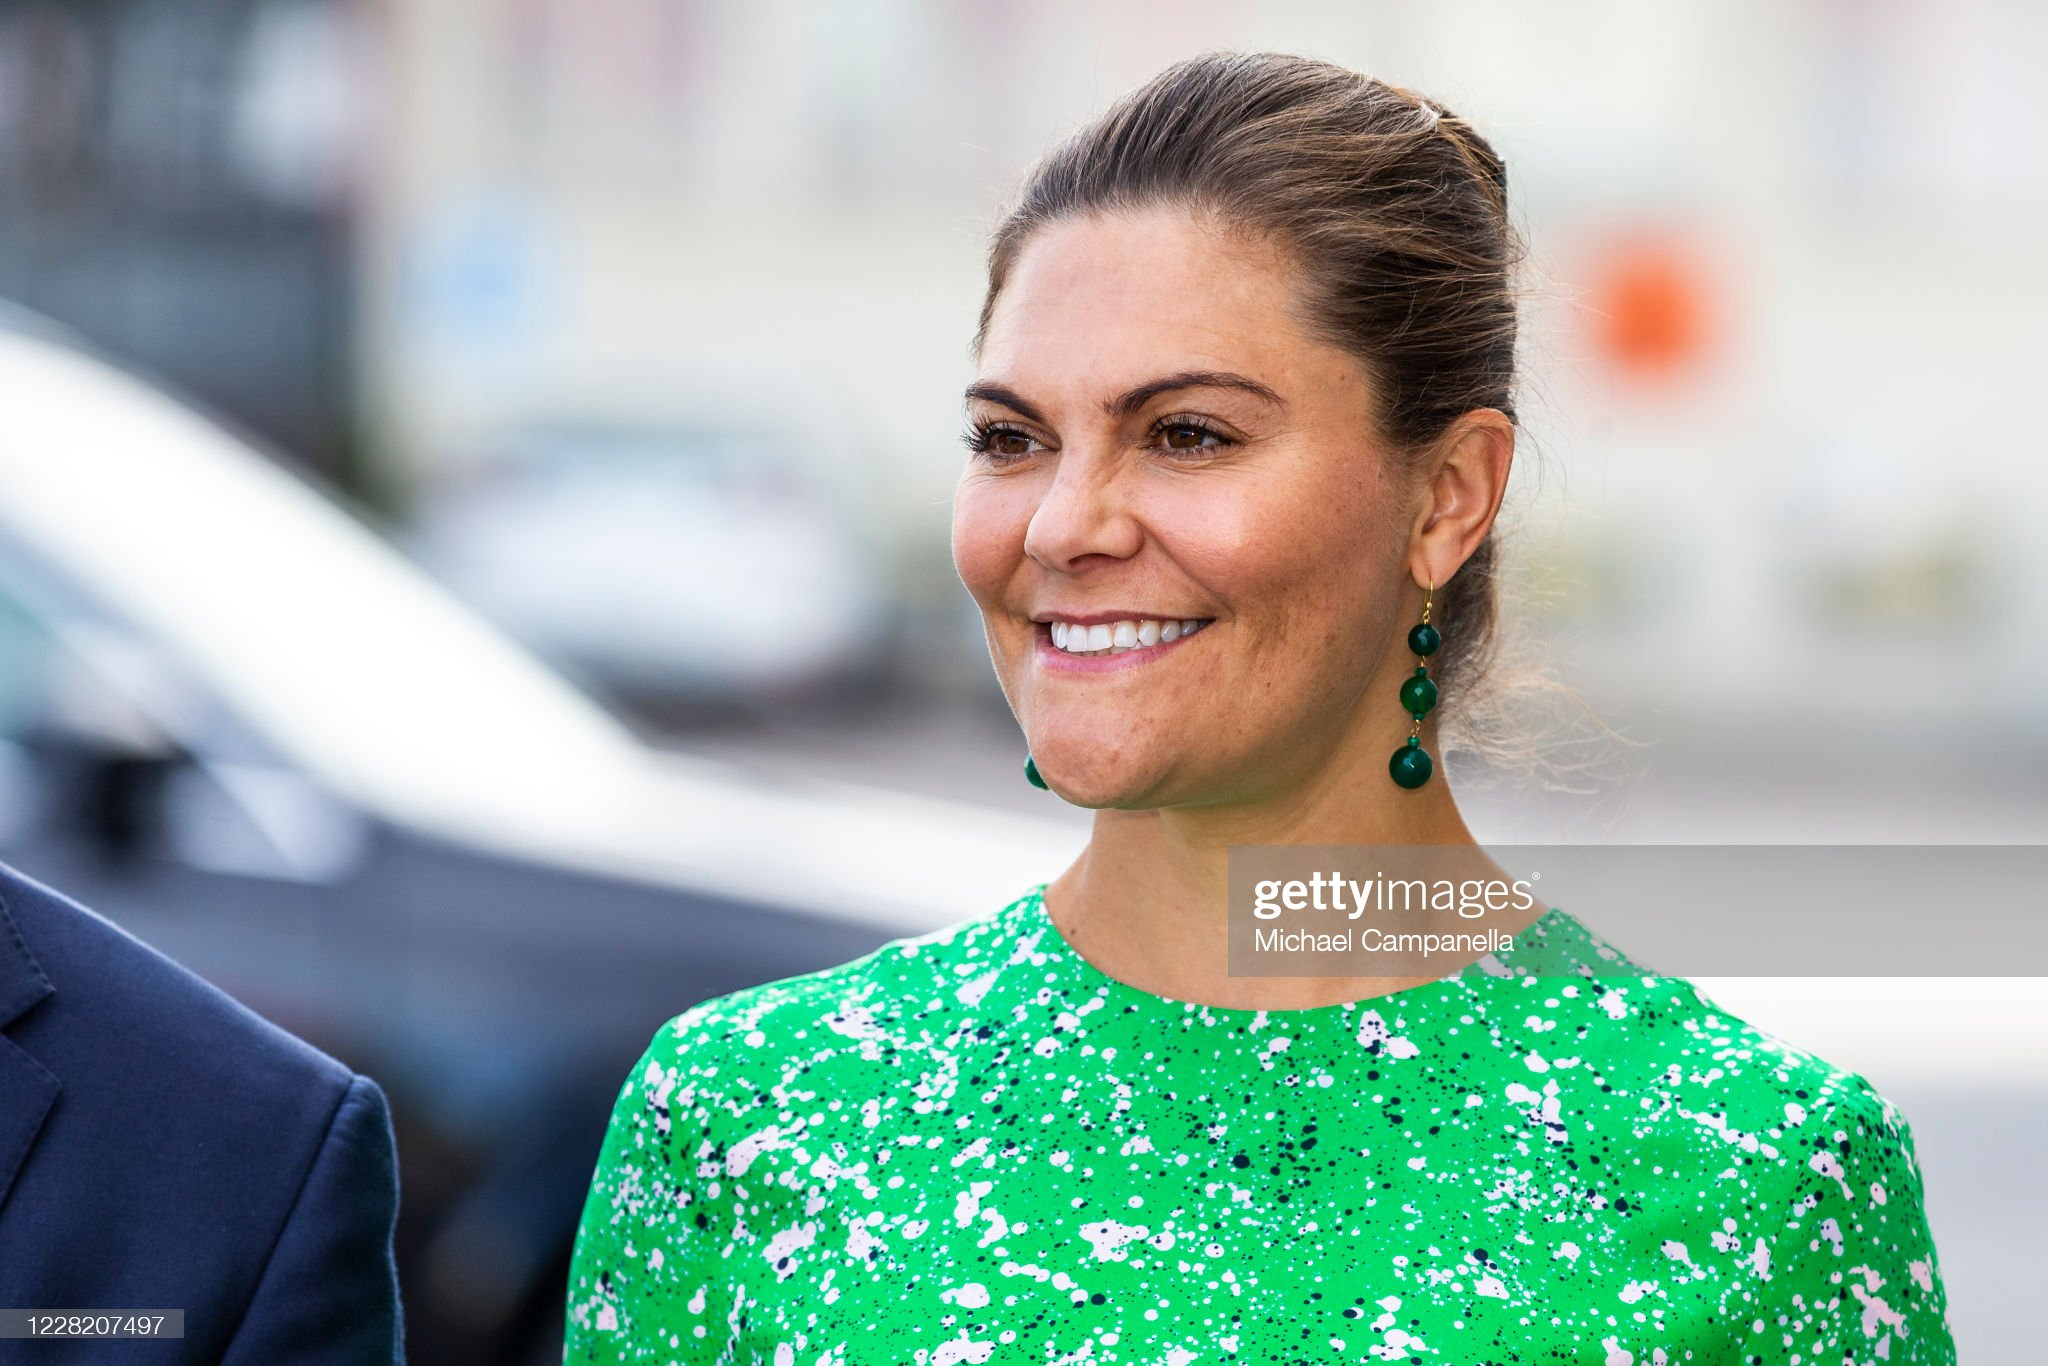 crown-princess-victoria-of-sweden-visits-the-artist-organization-on-picture-id1228207497